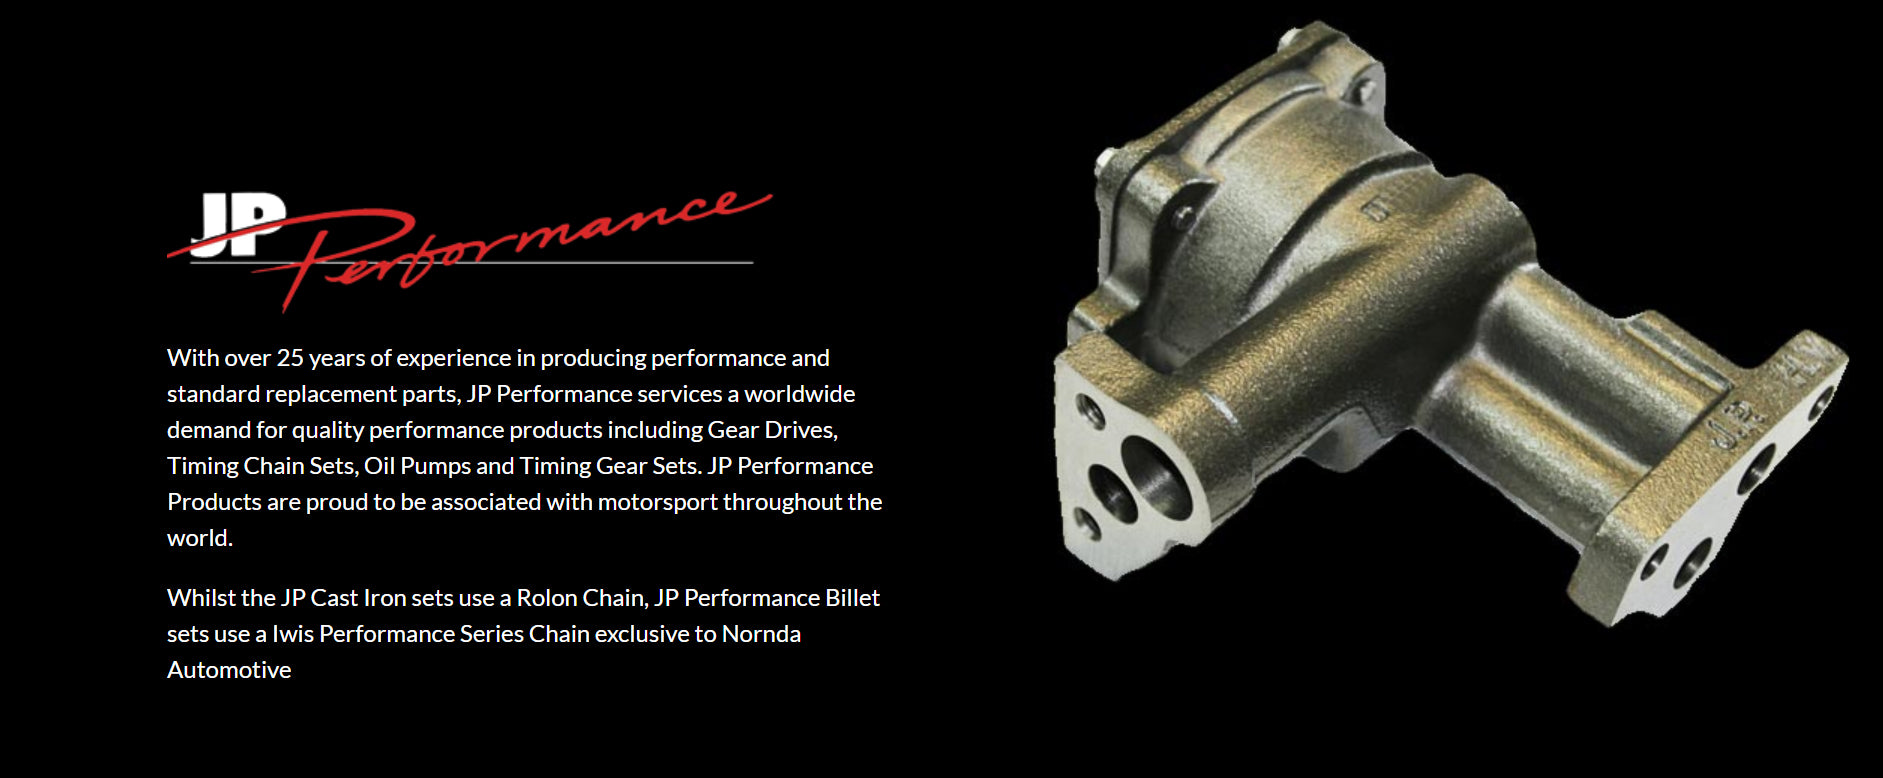 With over 25 years of experience in producing performance and standard replacement parts, JP Performance services a worldwide demand for quality performance products including Gear Drives, Timing Chain Sets, Oil Pumps and Timing Gear Sets. JP Performance Products are proud to be associated with motorsport throughout the world.  Whilst the JP Cast Iron sets use a Rolon Chain, JP Performance Billet sets use a Iwis Performance Series Chain exclusive to Nornda Automotive